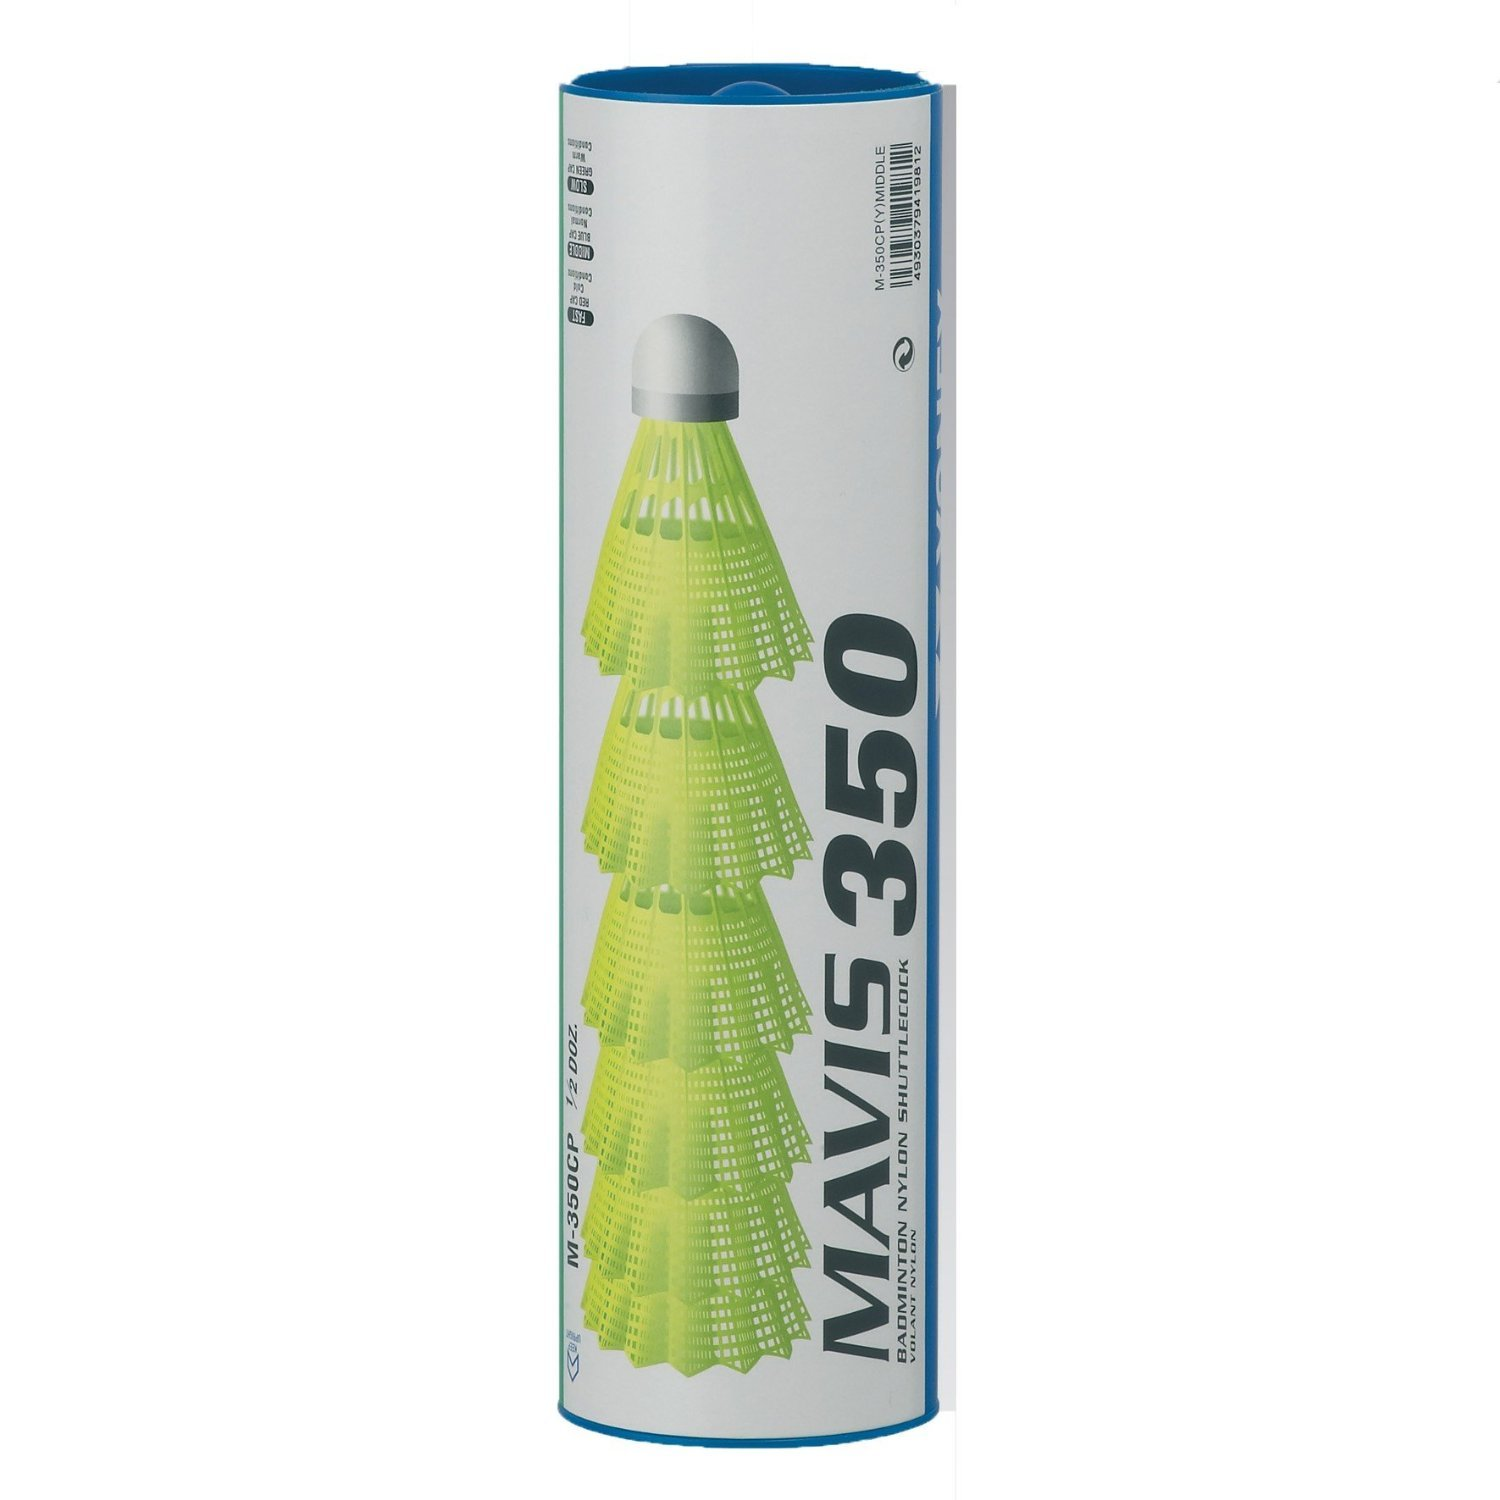 Yonex Mavis 350 Plastic Shuttlecocks (Pkg of 4 tubes (24 pcs) - Yellow Medium Speed) by Yonex (Image #1)